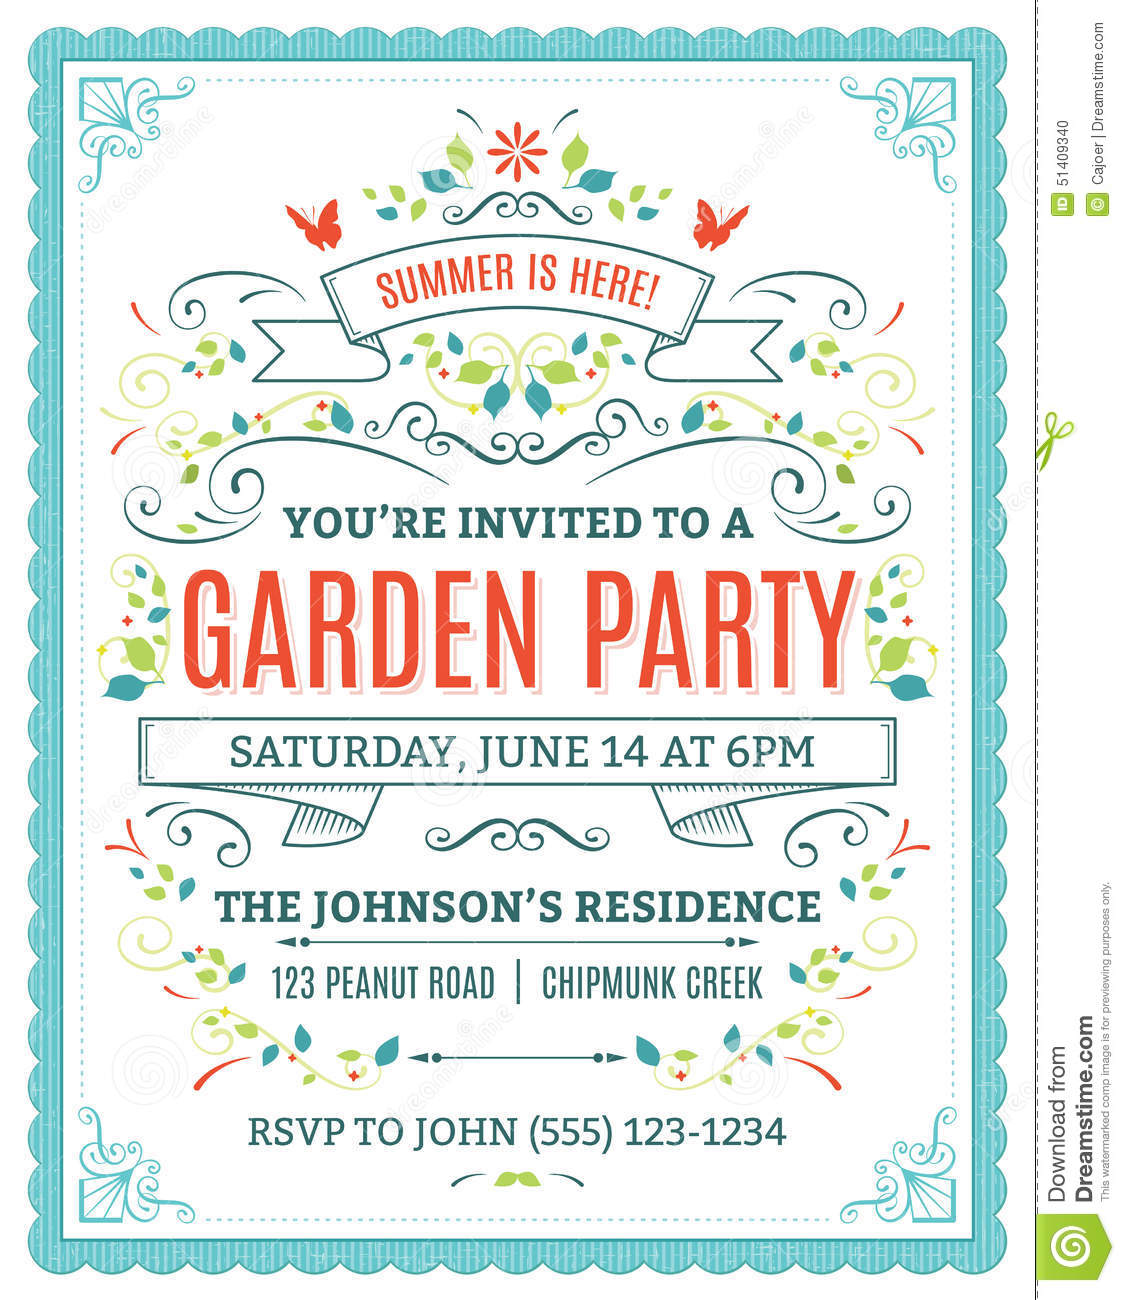 Garden Party Invitation Stock Vector - Image: 51409340